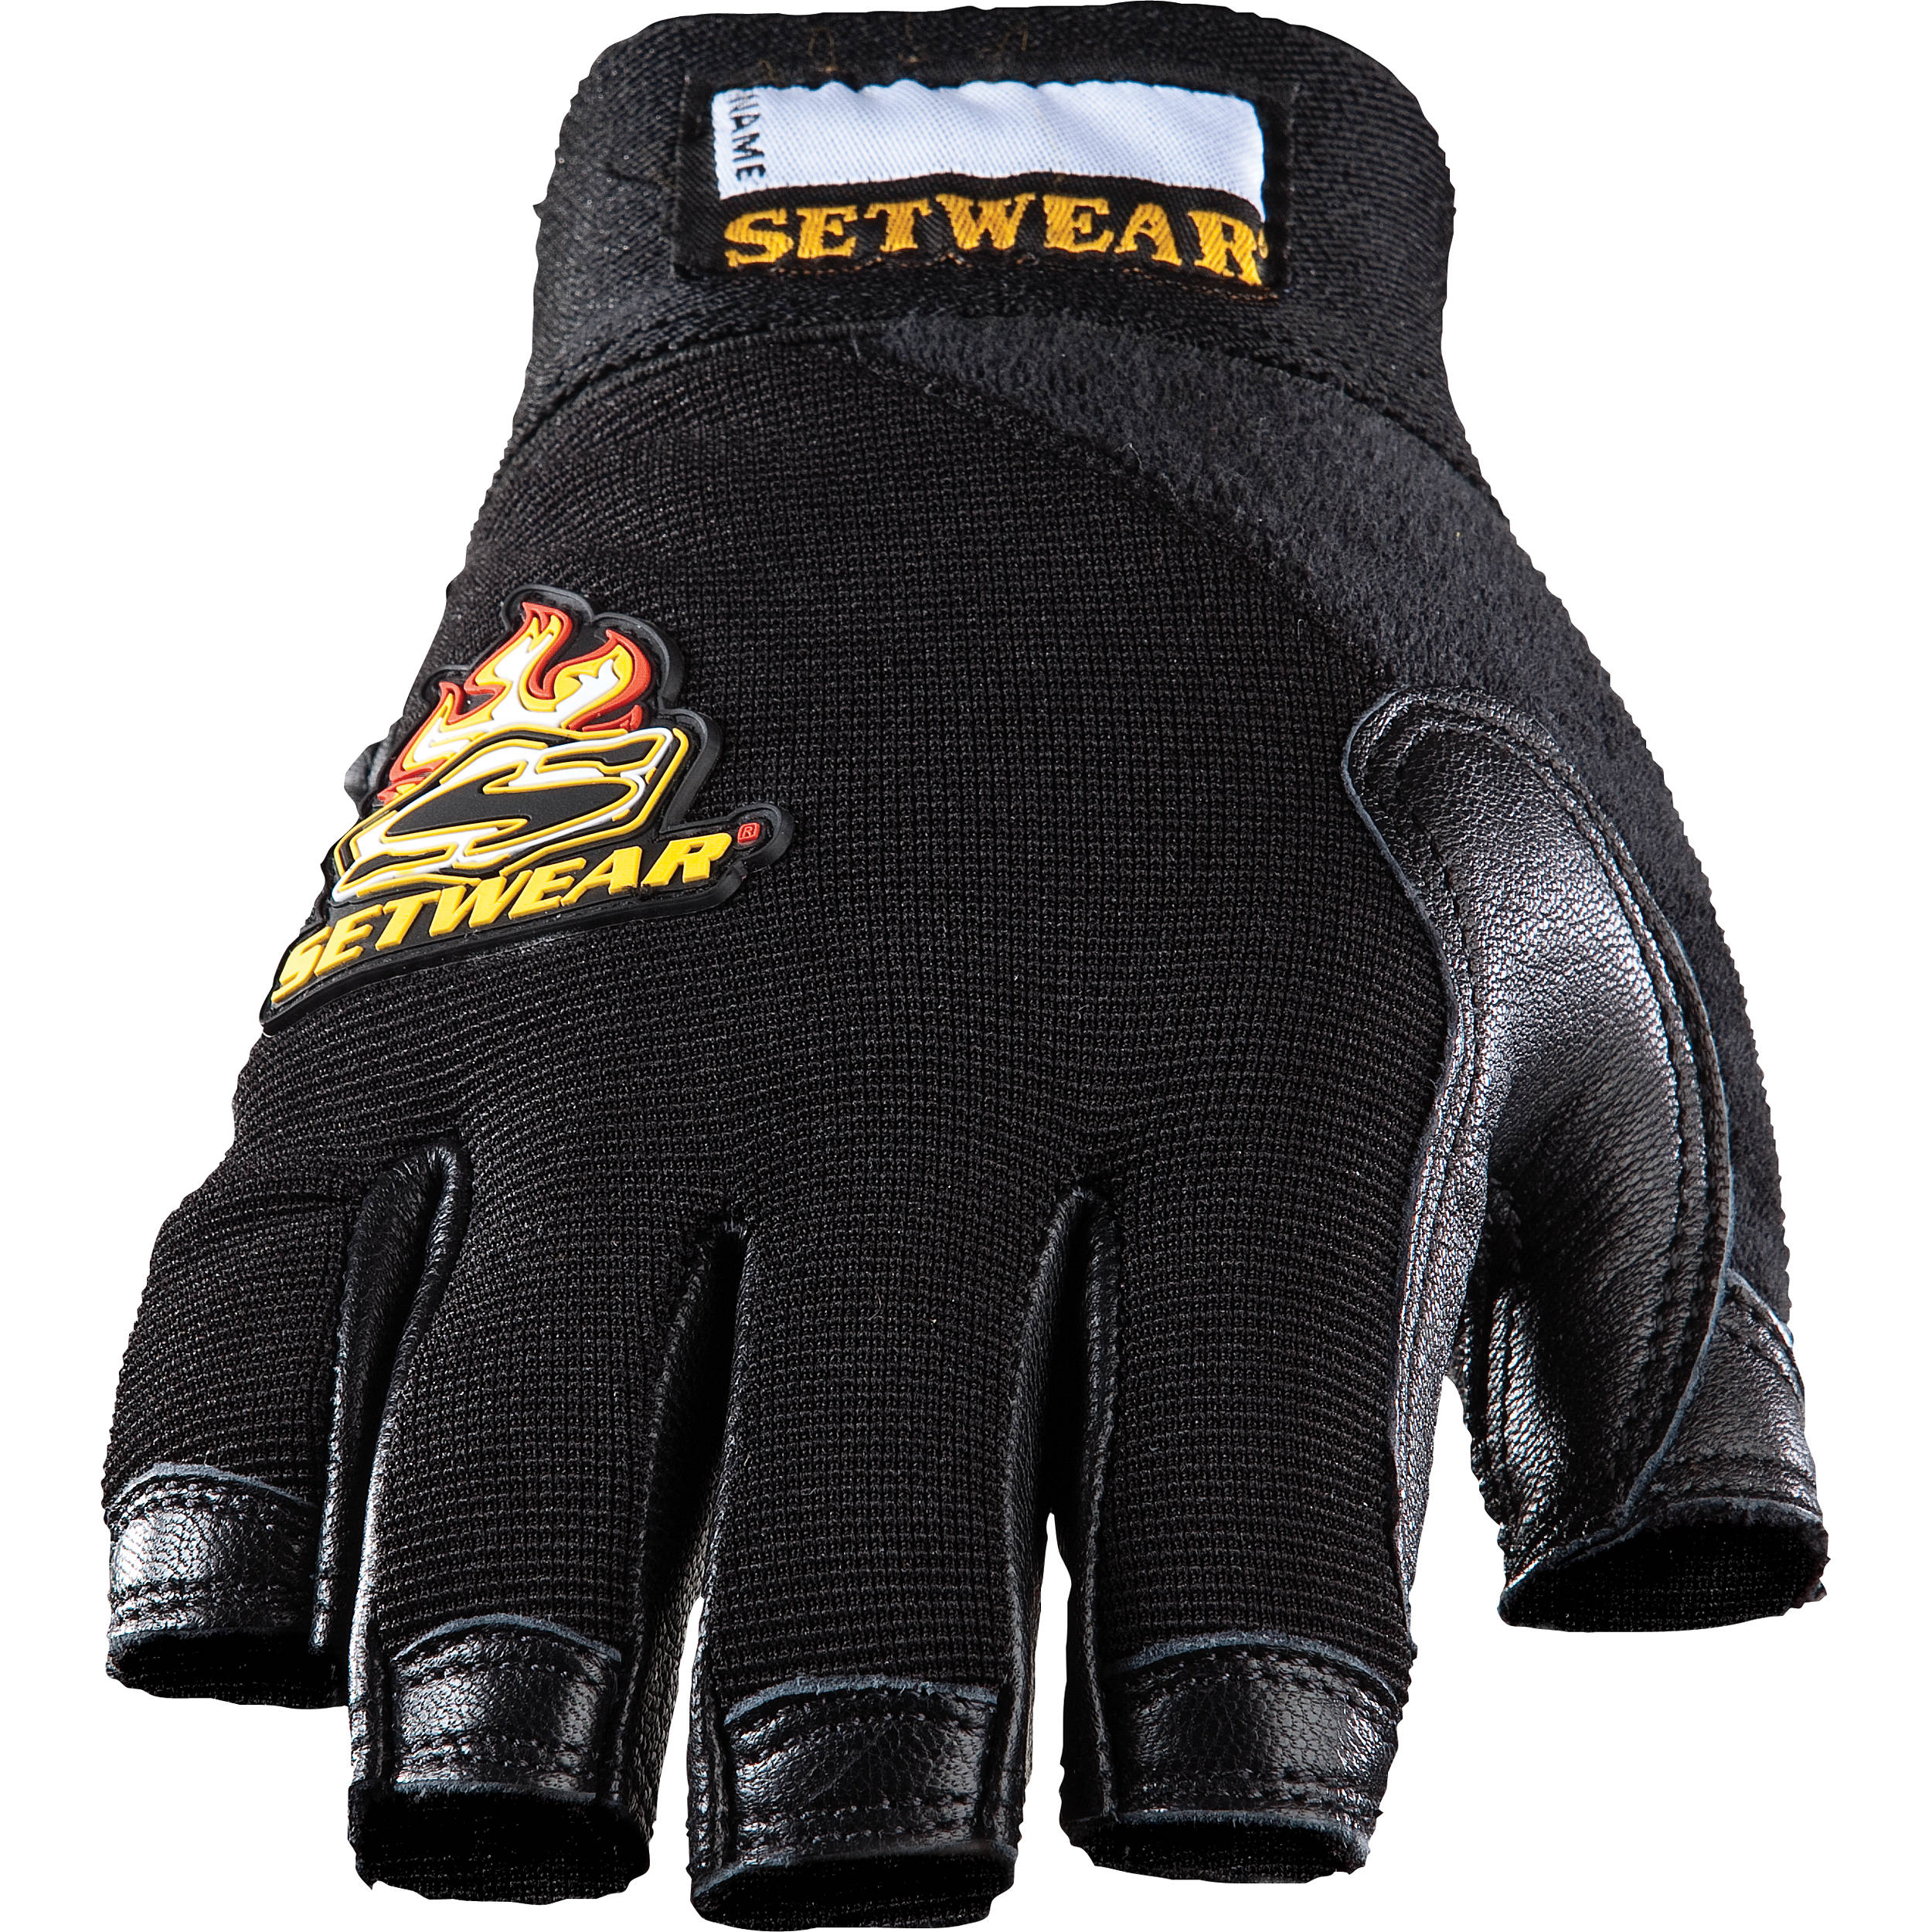 Fingerless gloves canada - Setwear Leather Fingerless Gloves Large